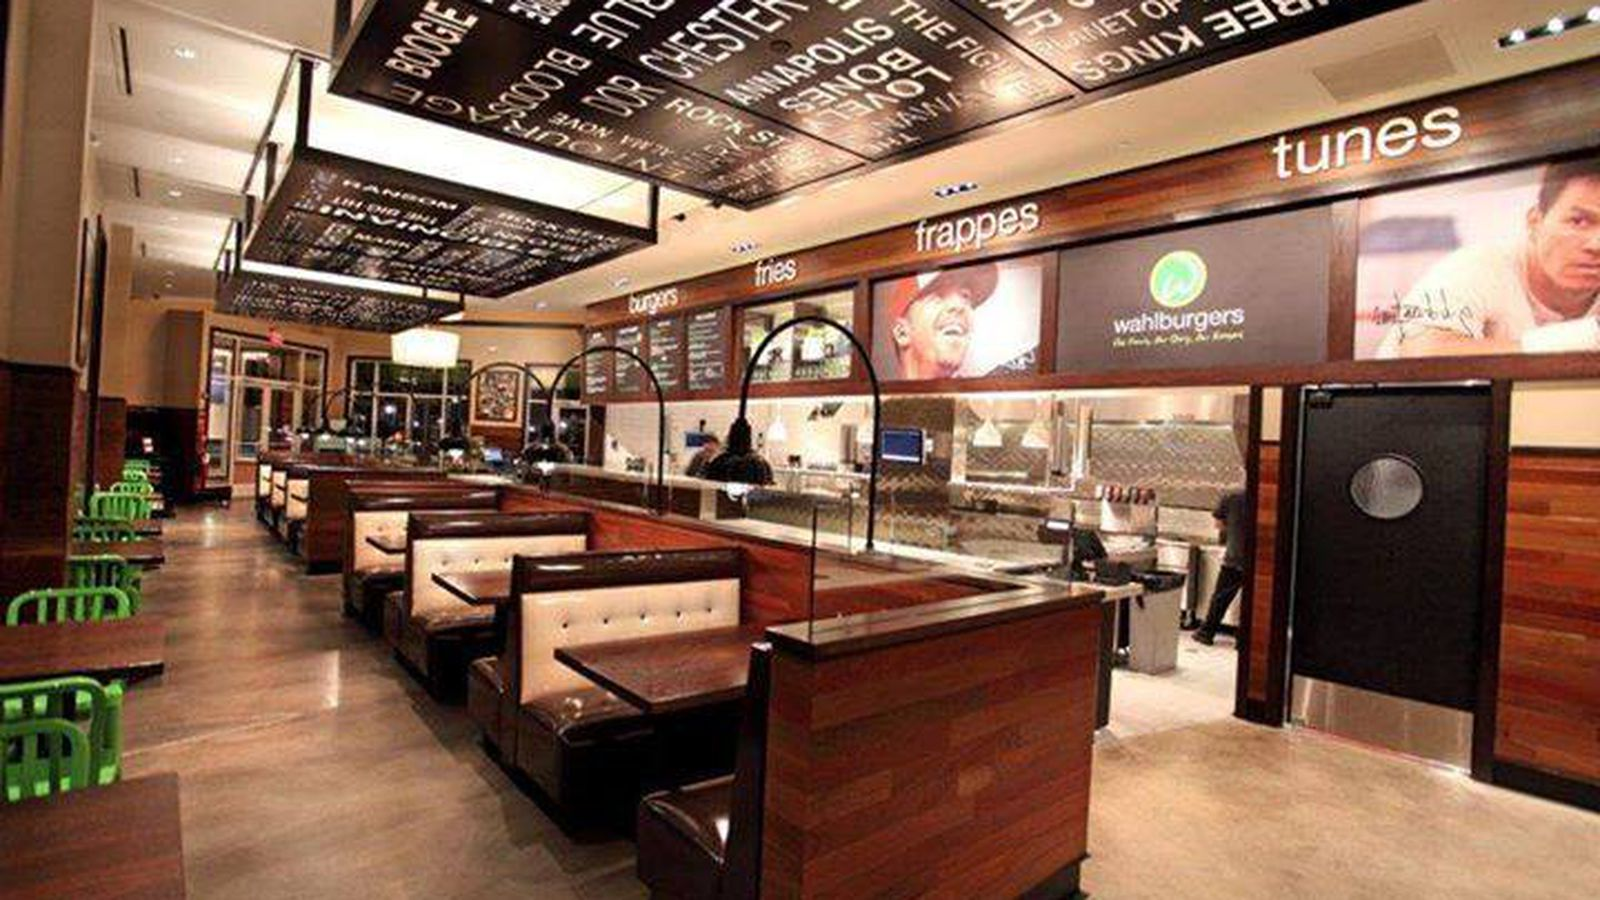 Mark Wahlberg Brings La S First Wahlburgers Location To